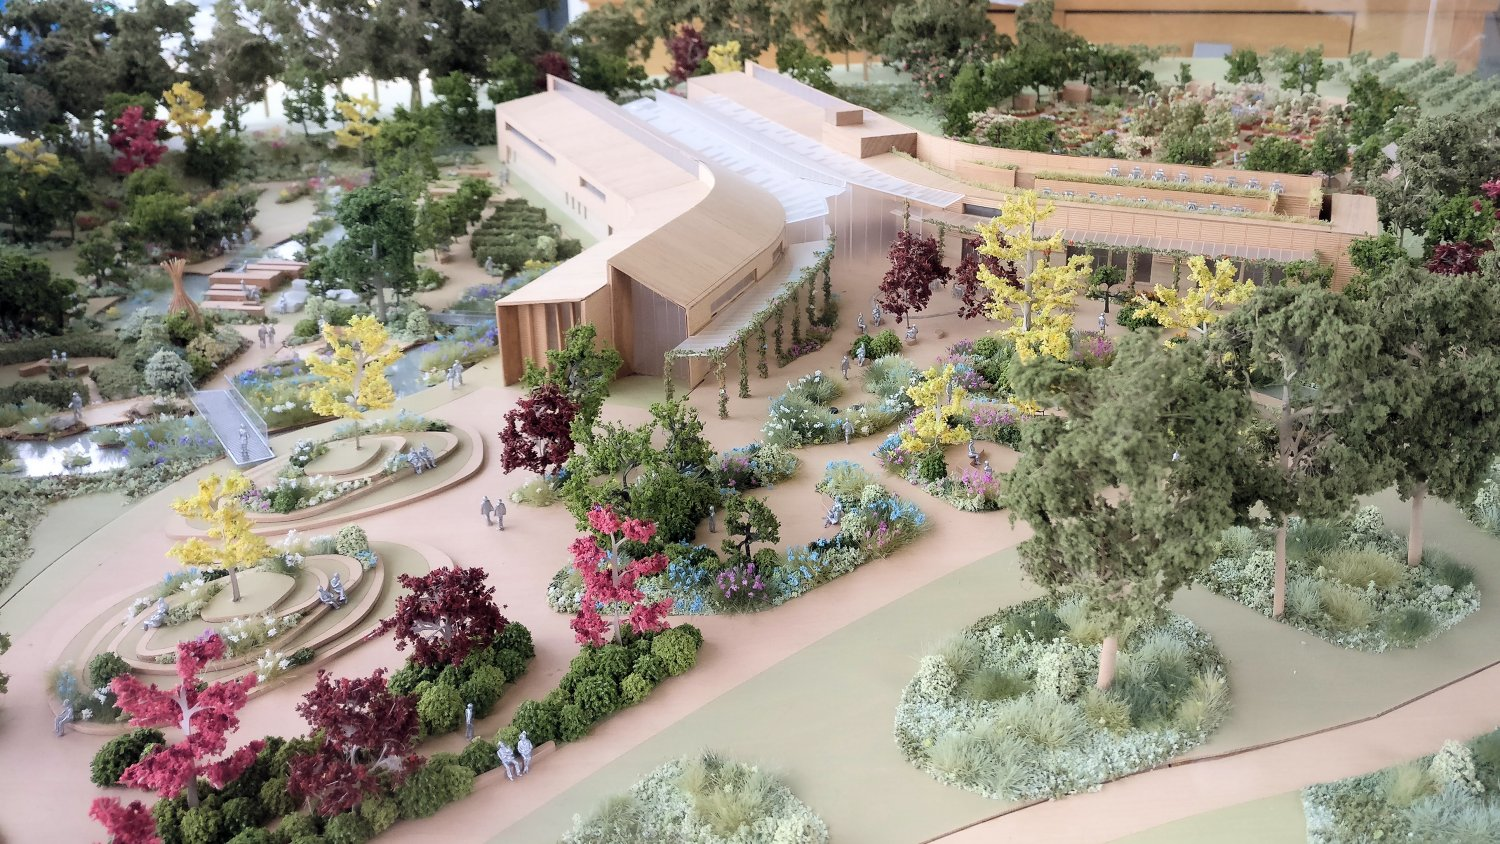 Model of the new science and education centre at RHS Wisley surrounded by the Well Being gardens which were designed by Matt Keightley